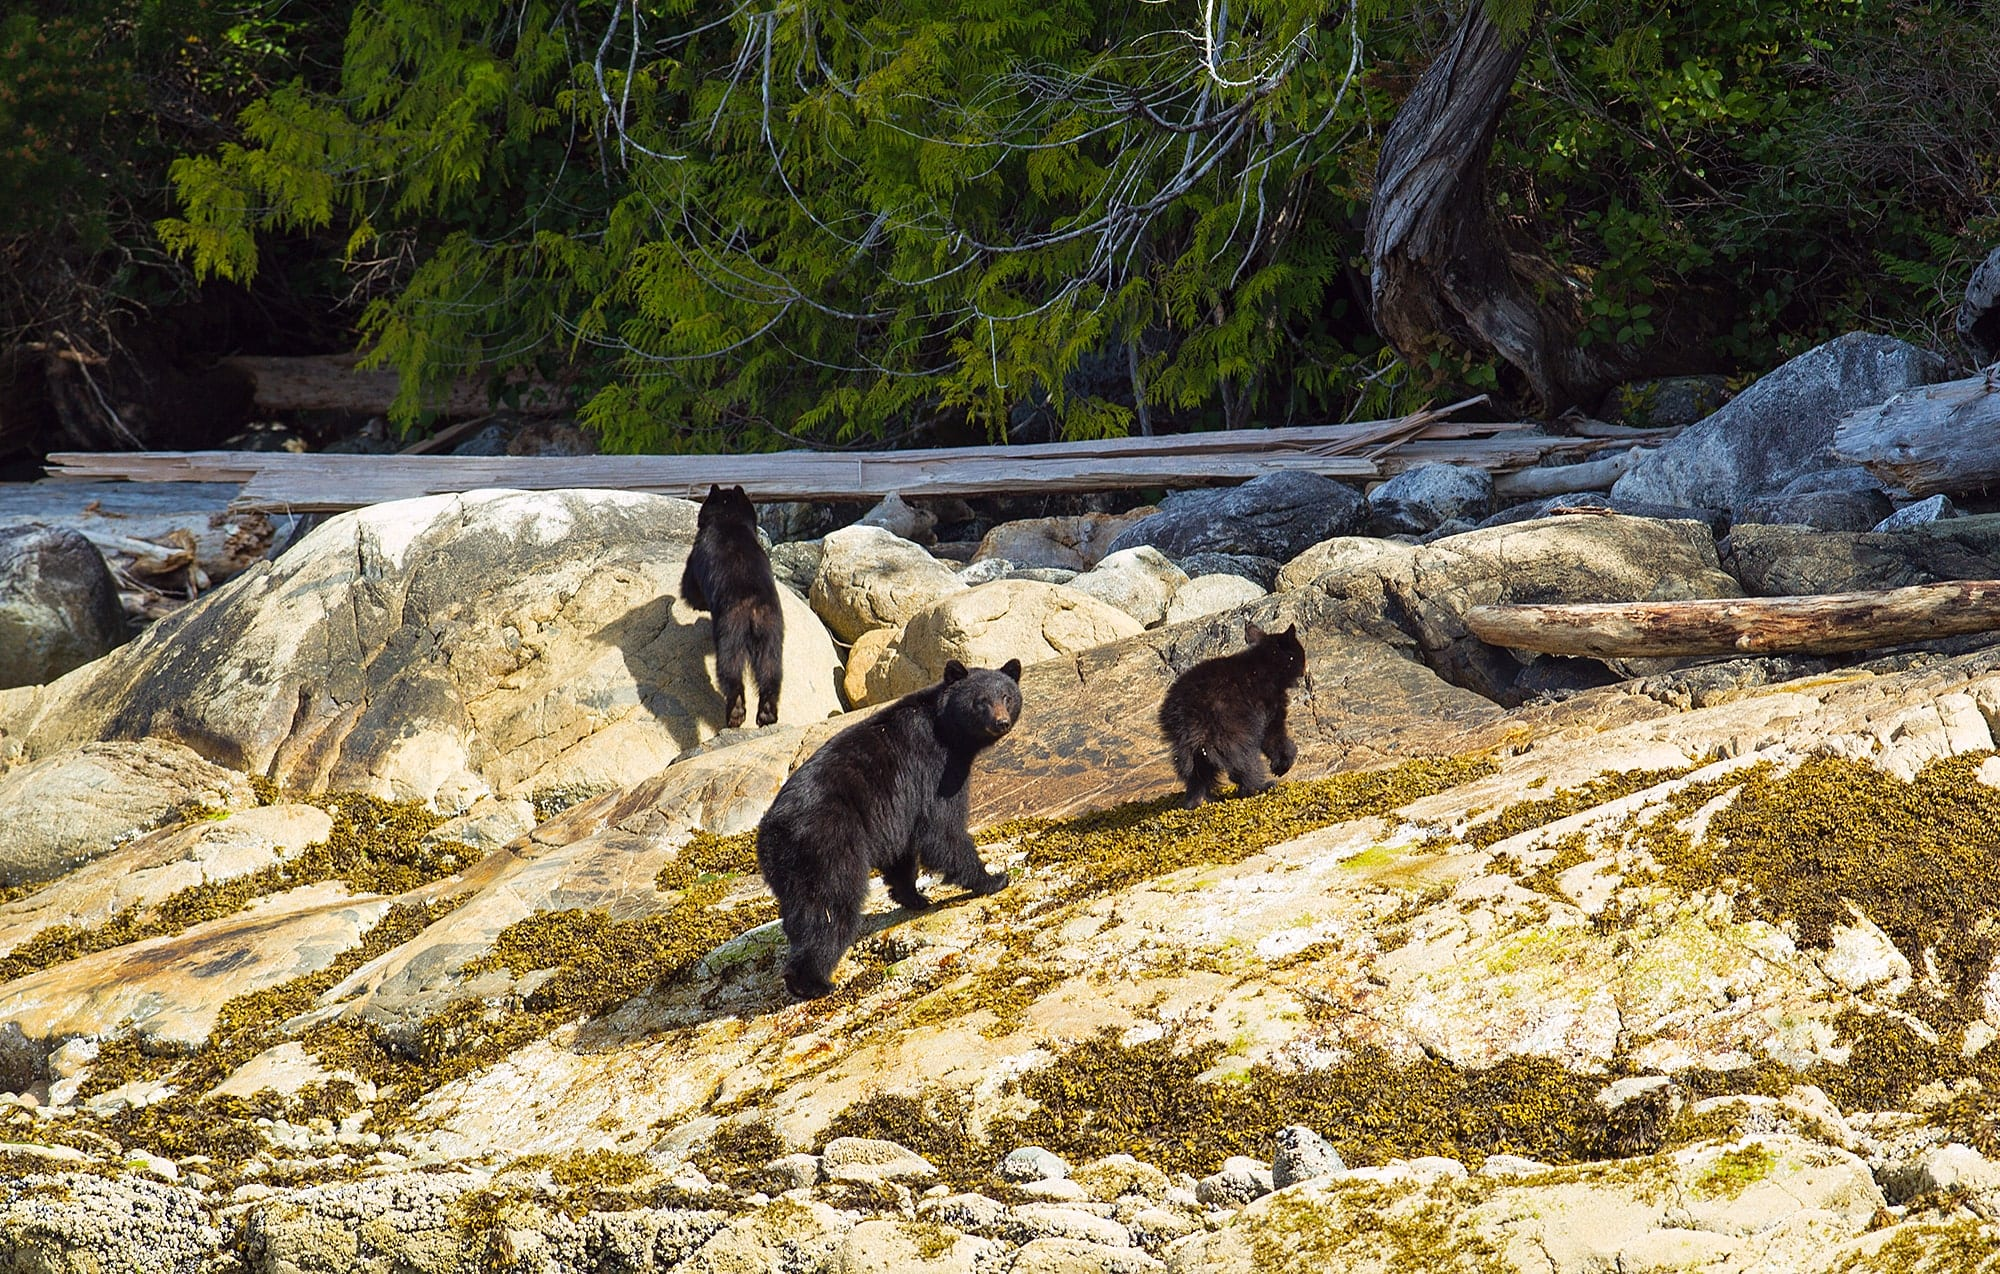 Black bear and cubs roaming near water.